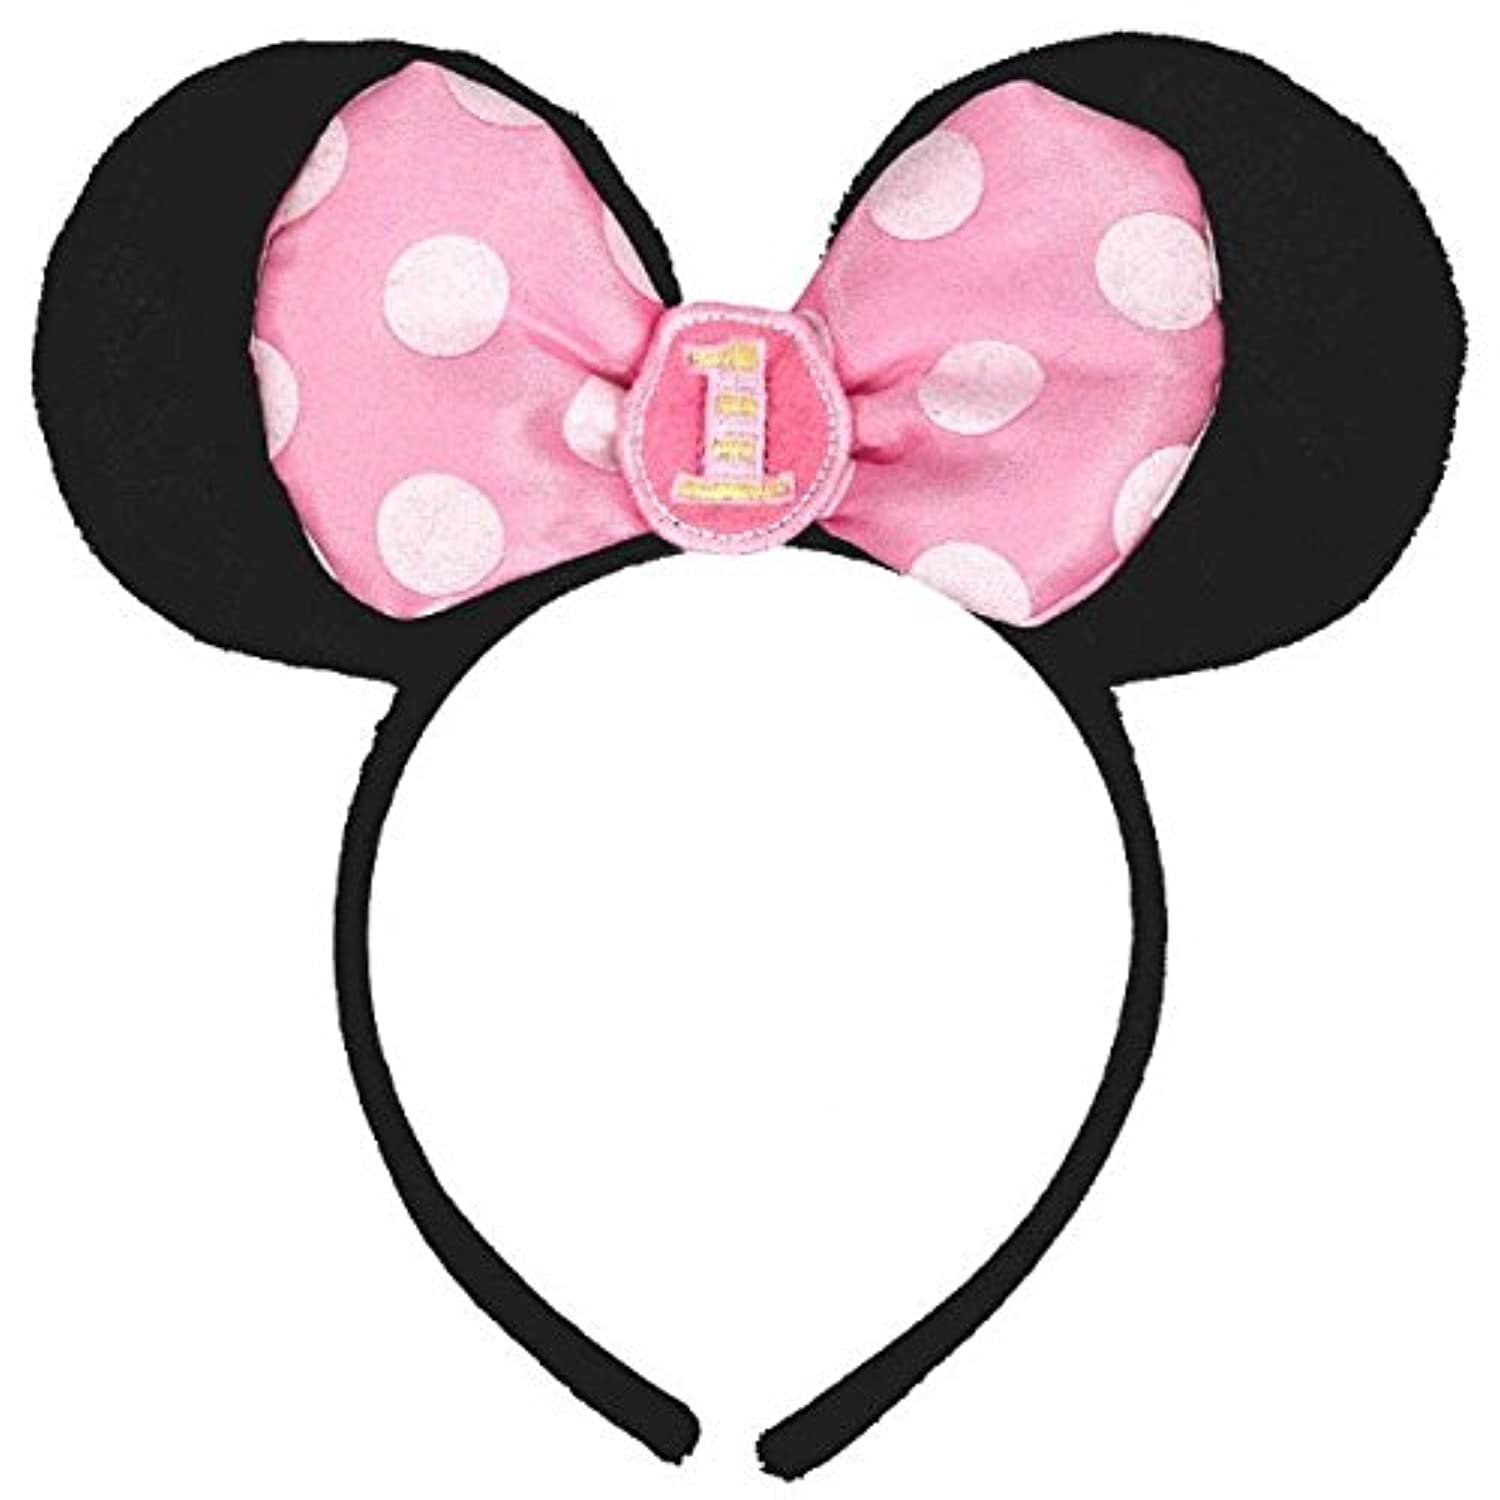 [Amscan]Amscan Minnie Mouse 1st Birthday Headband, Black/Pink AMI 251139 [並行輸入品]